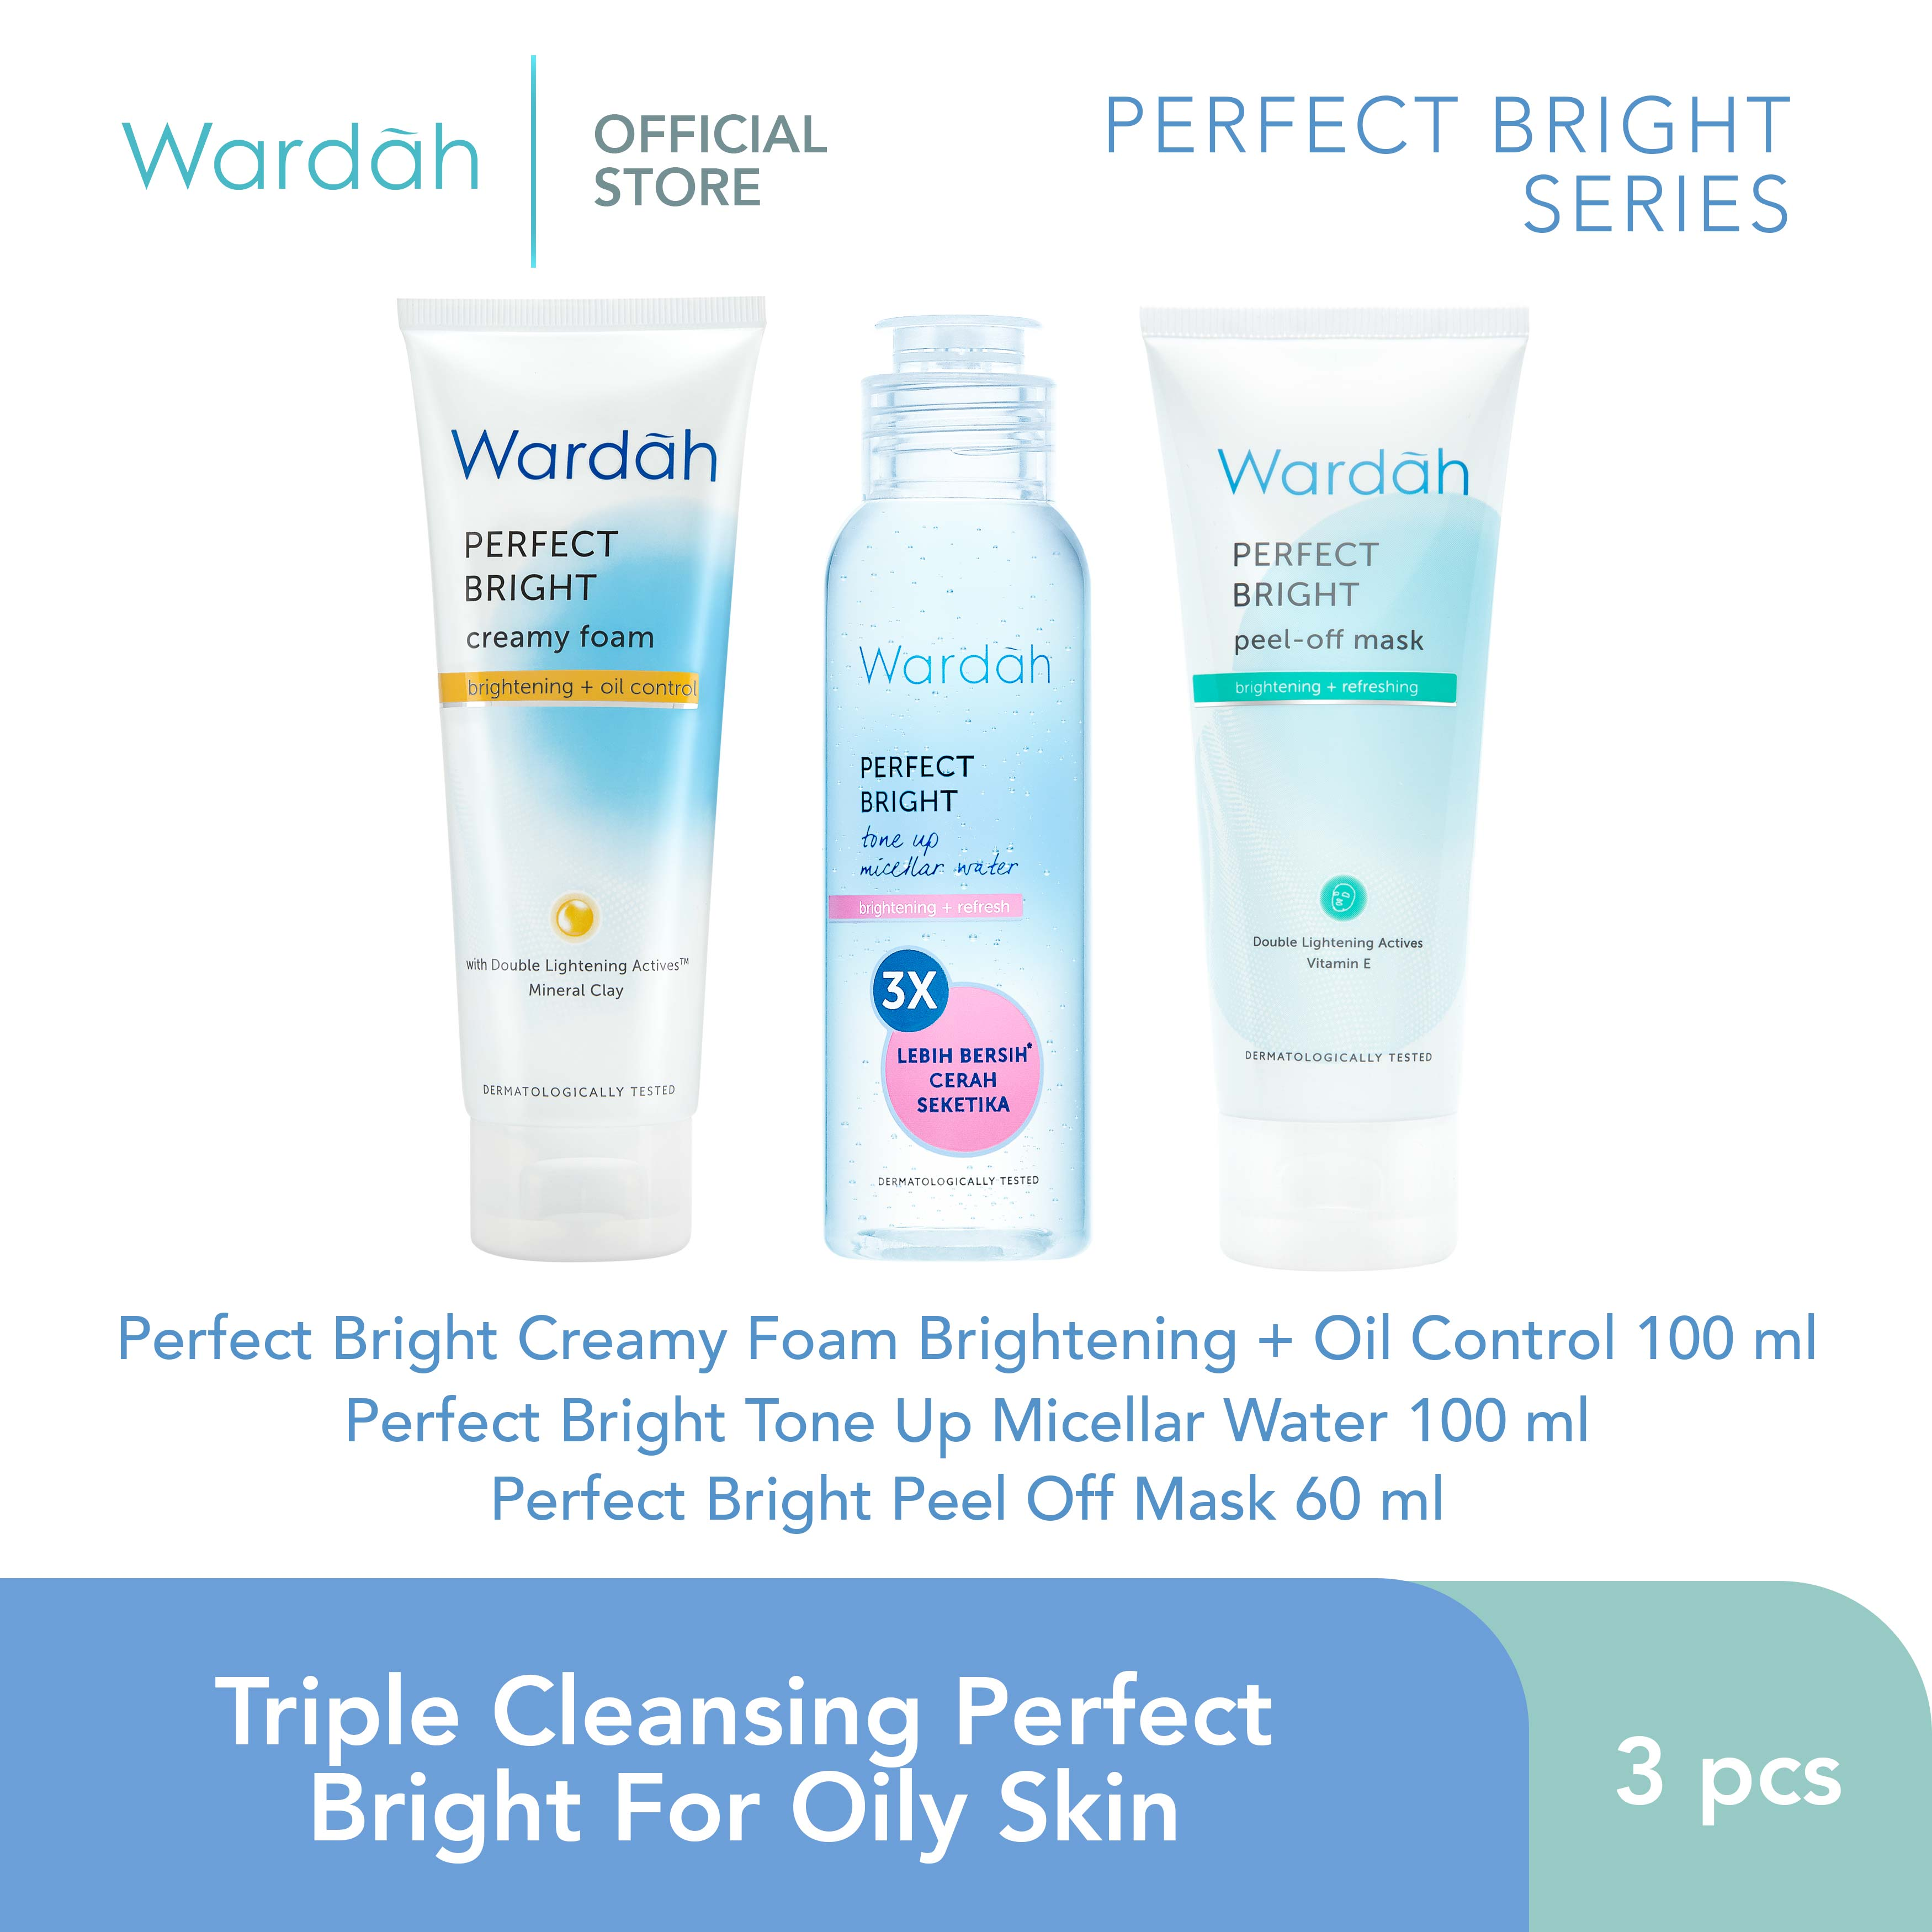 Triple Cleansing Perfect Bright For Oily Skin